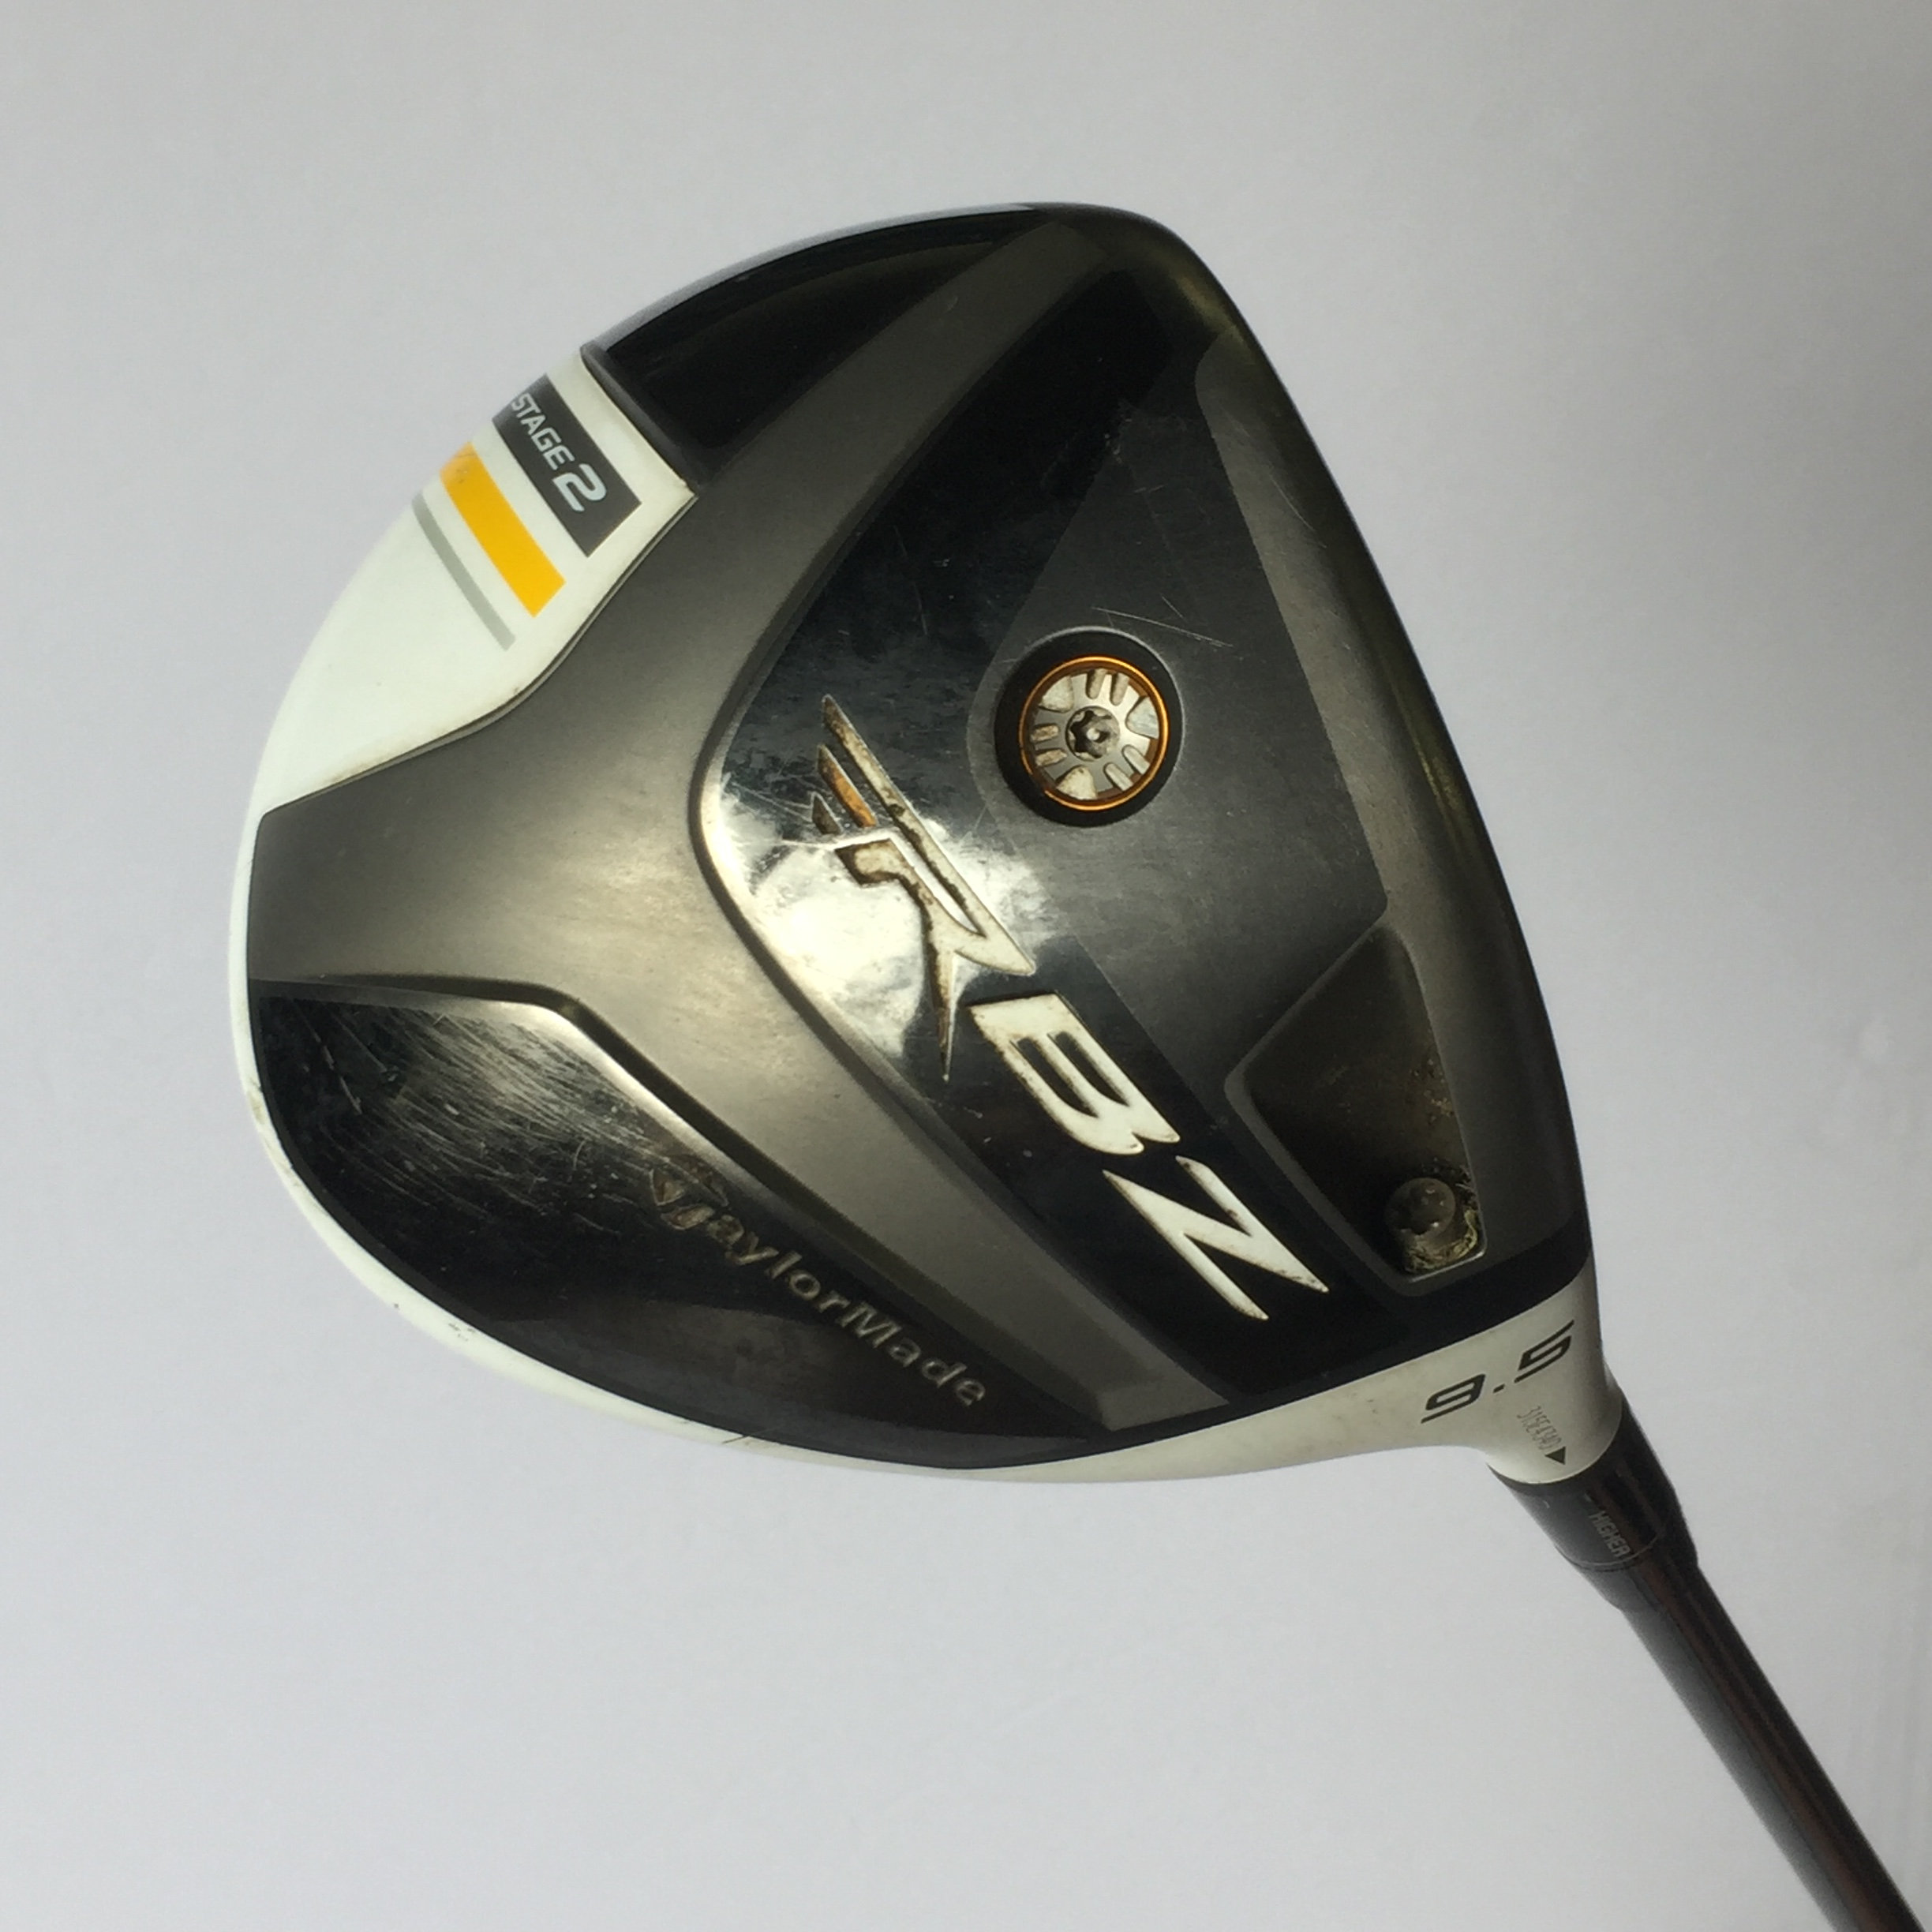 Taylormade Rocketballz Driver >> Taylormade Rbz 9 5 Degree Driver